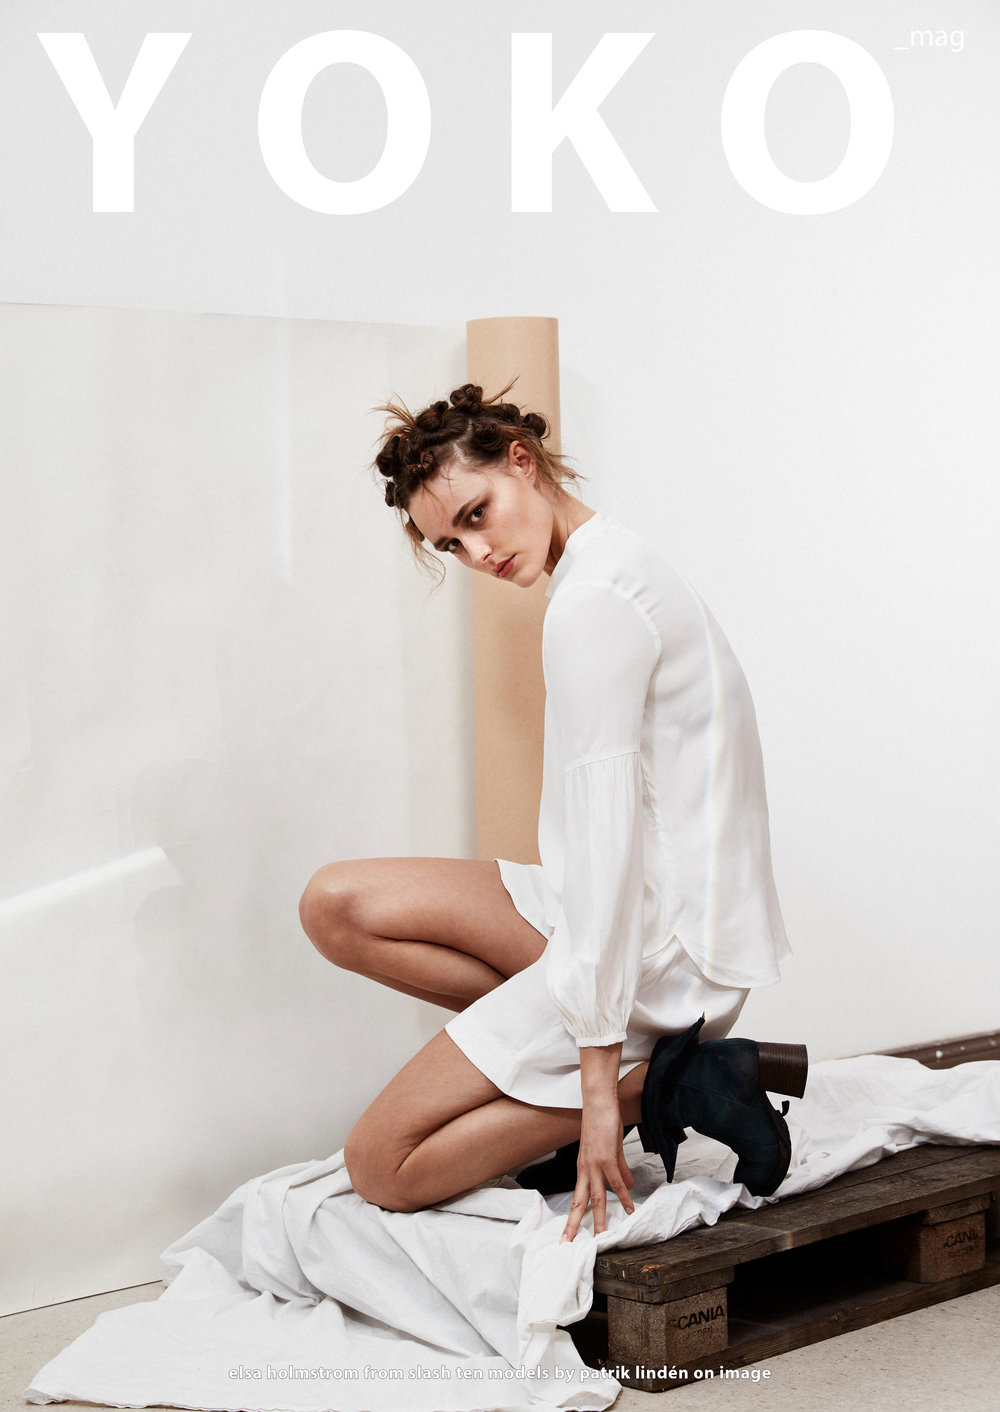 Astrid Blouse & Nellie shorts featured in YOKO Magazine in January 2018